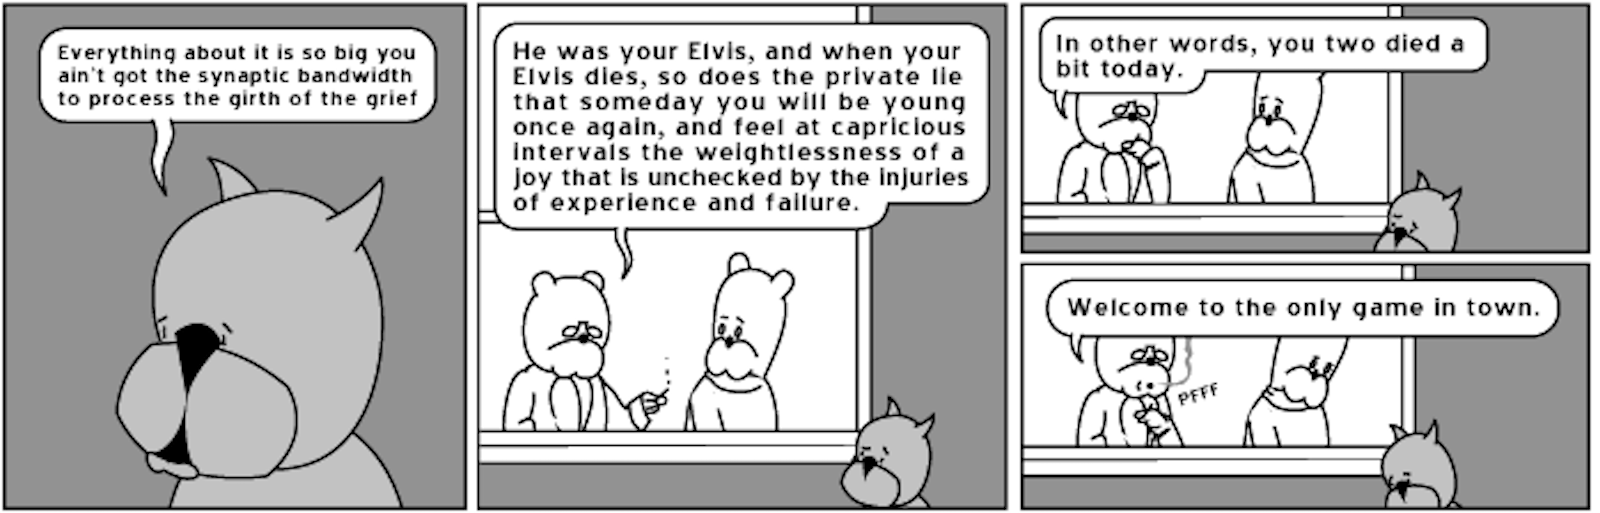 achewood - only game in town.png